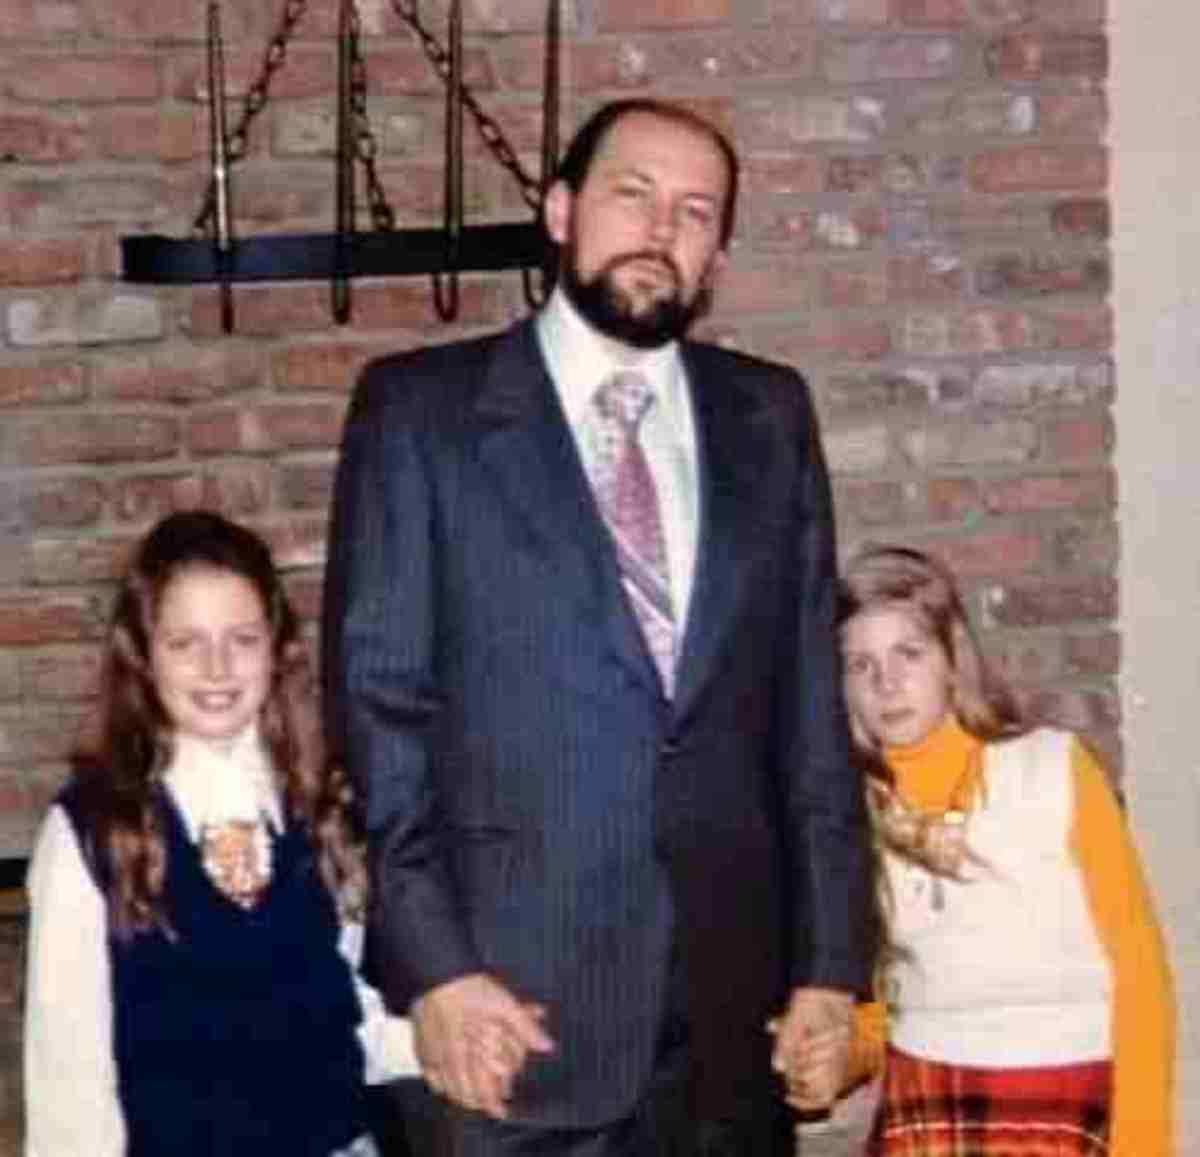 Respectable Family Man - With His Daughters